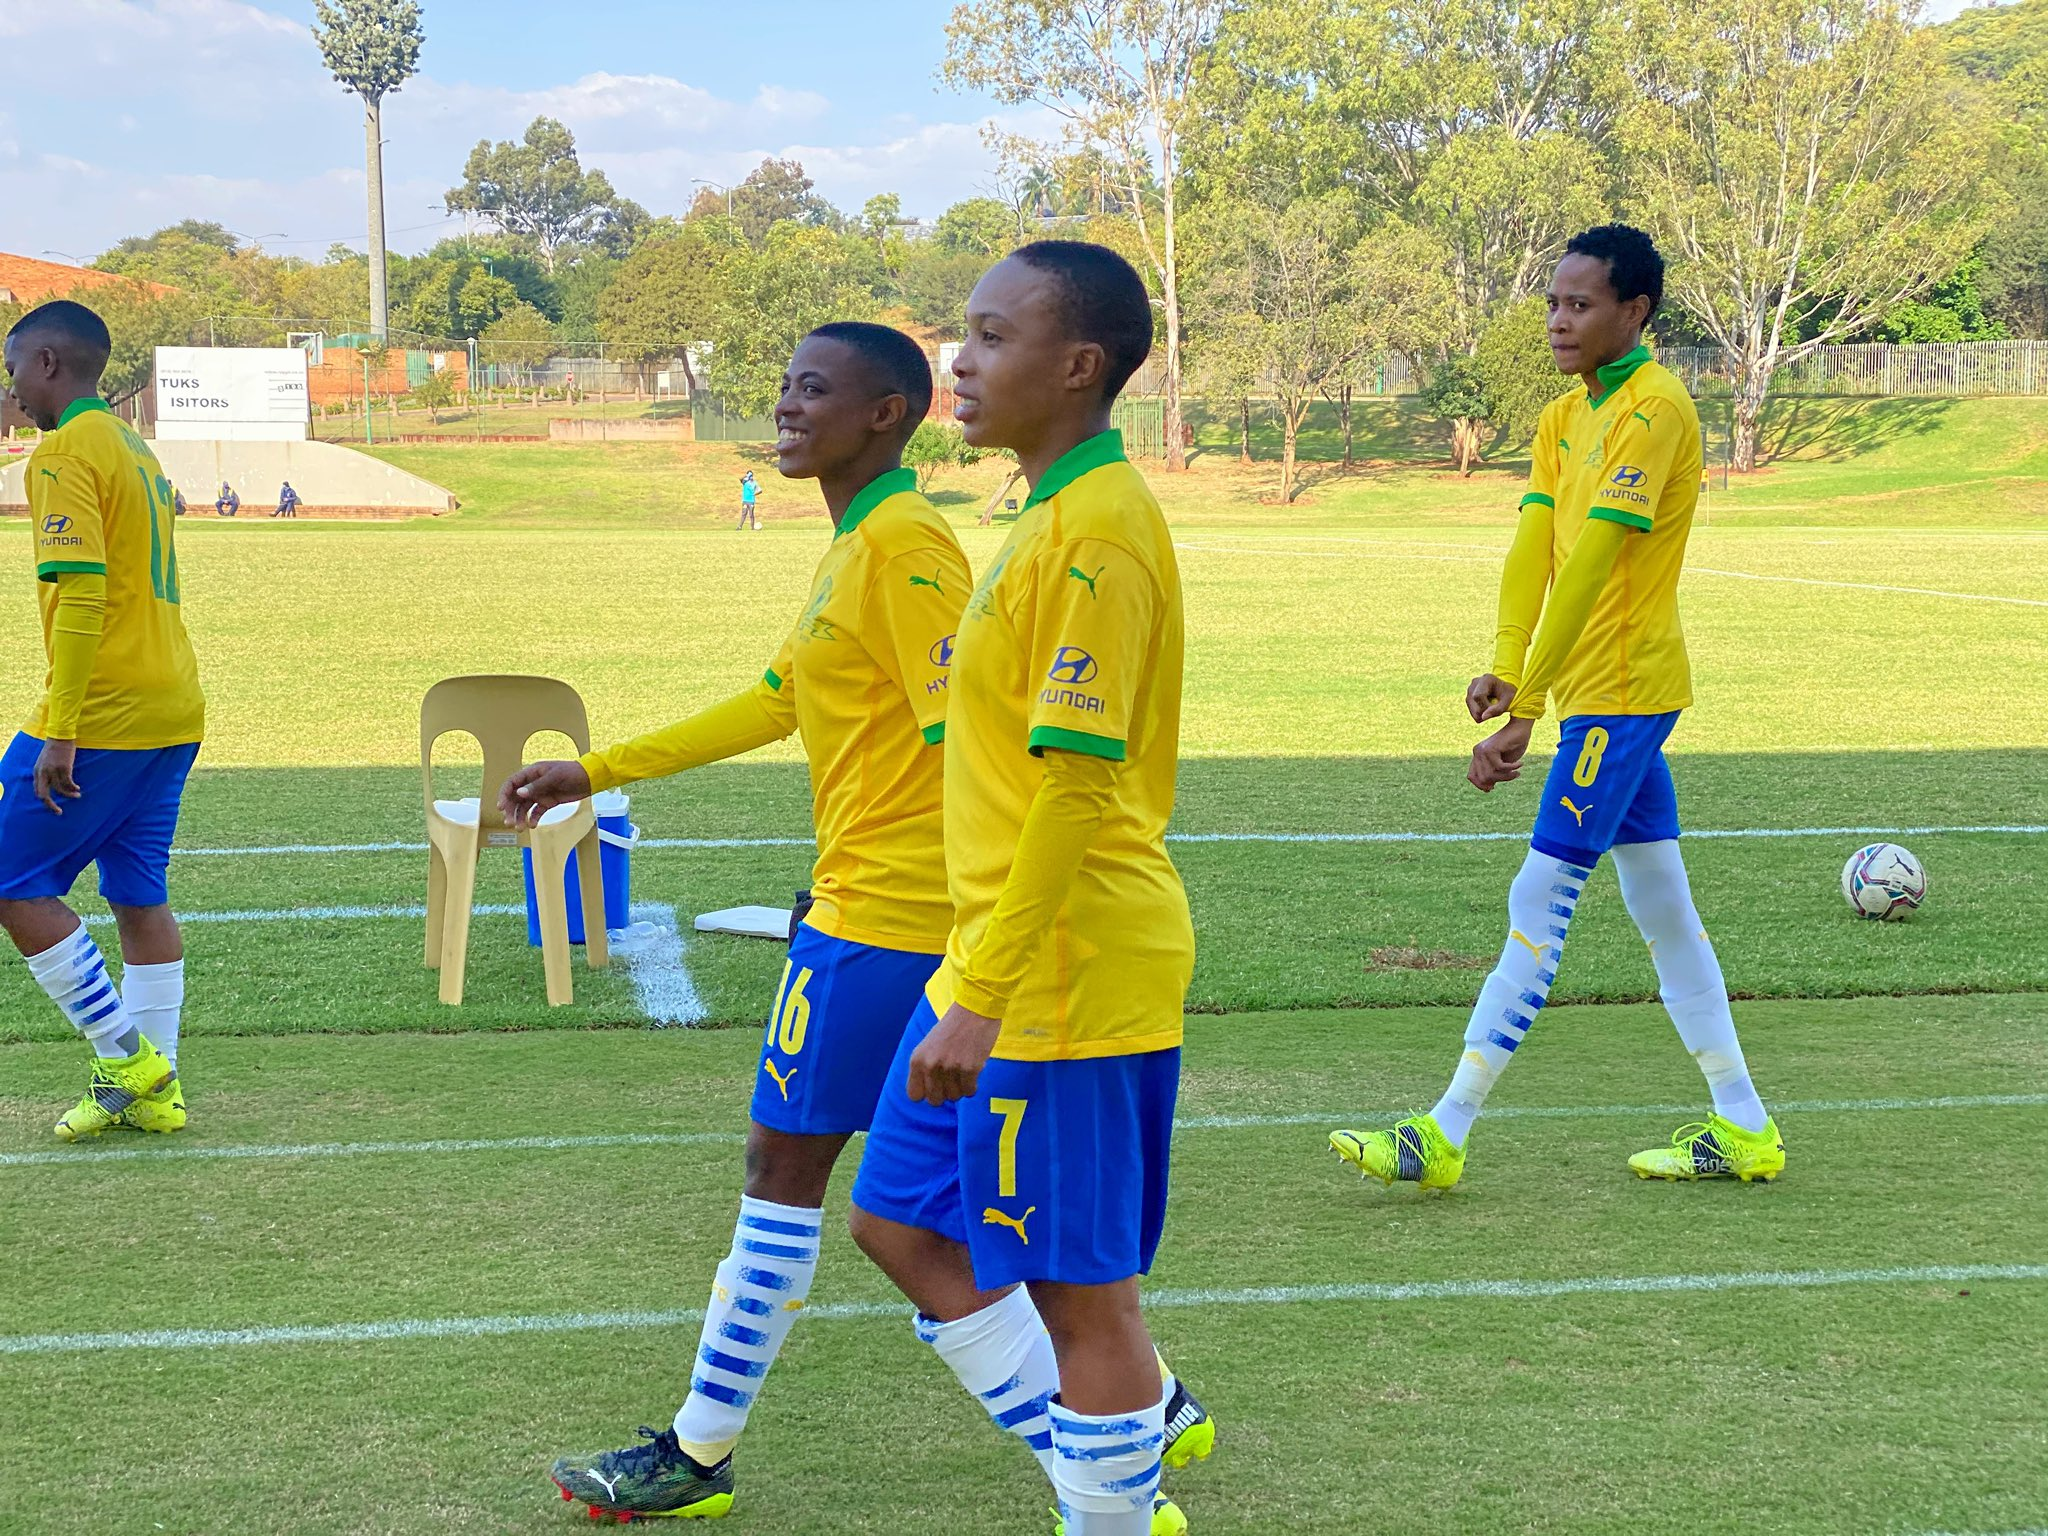 Masandawana's first-team players are expected to return after resting against Tsunami Queens